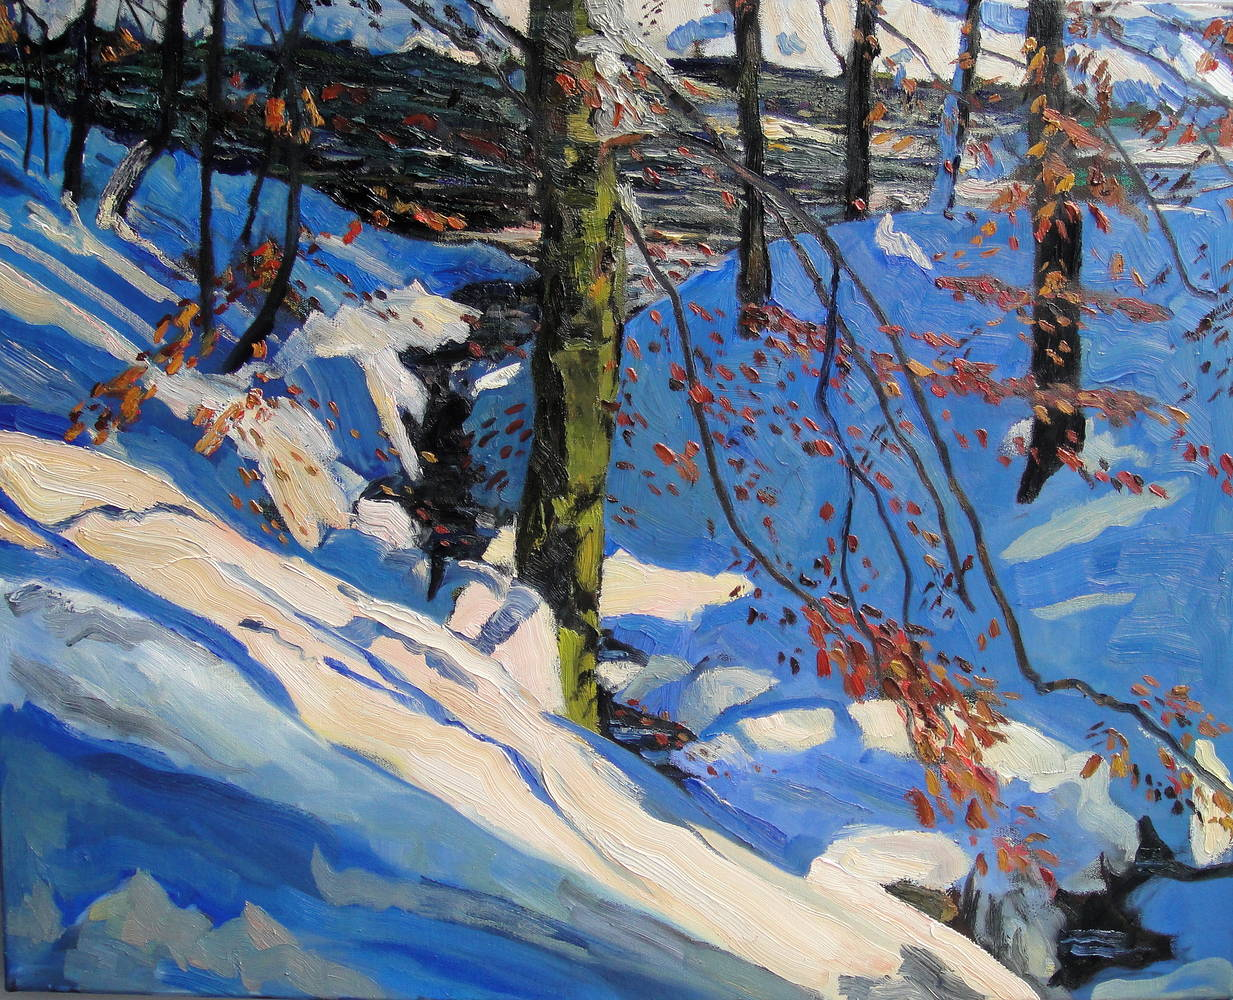 Oil painting Blue Creekside by Edward Miller